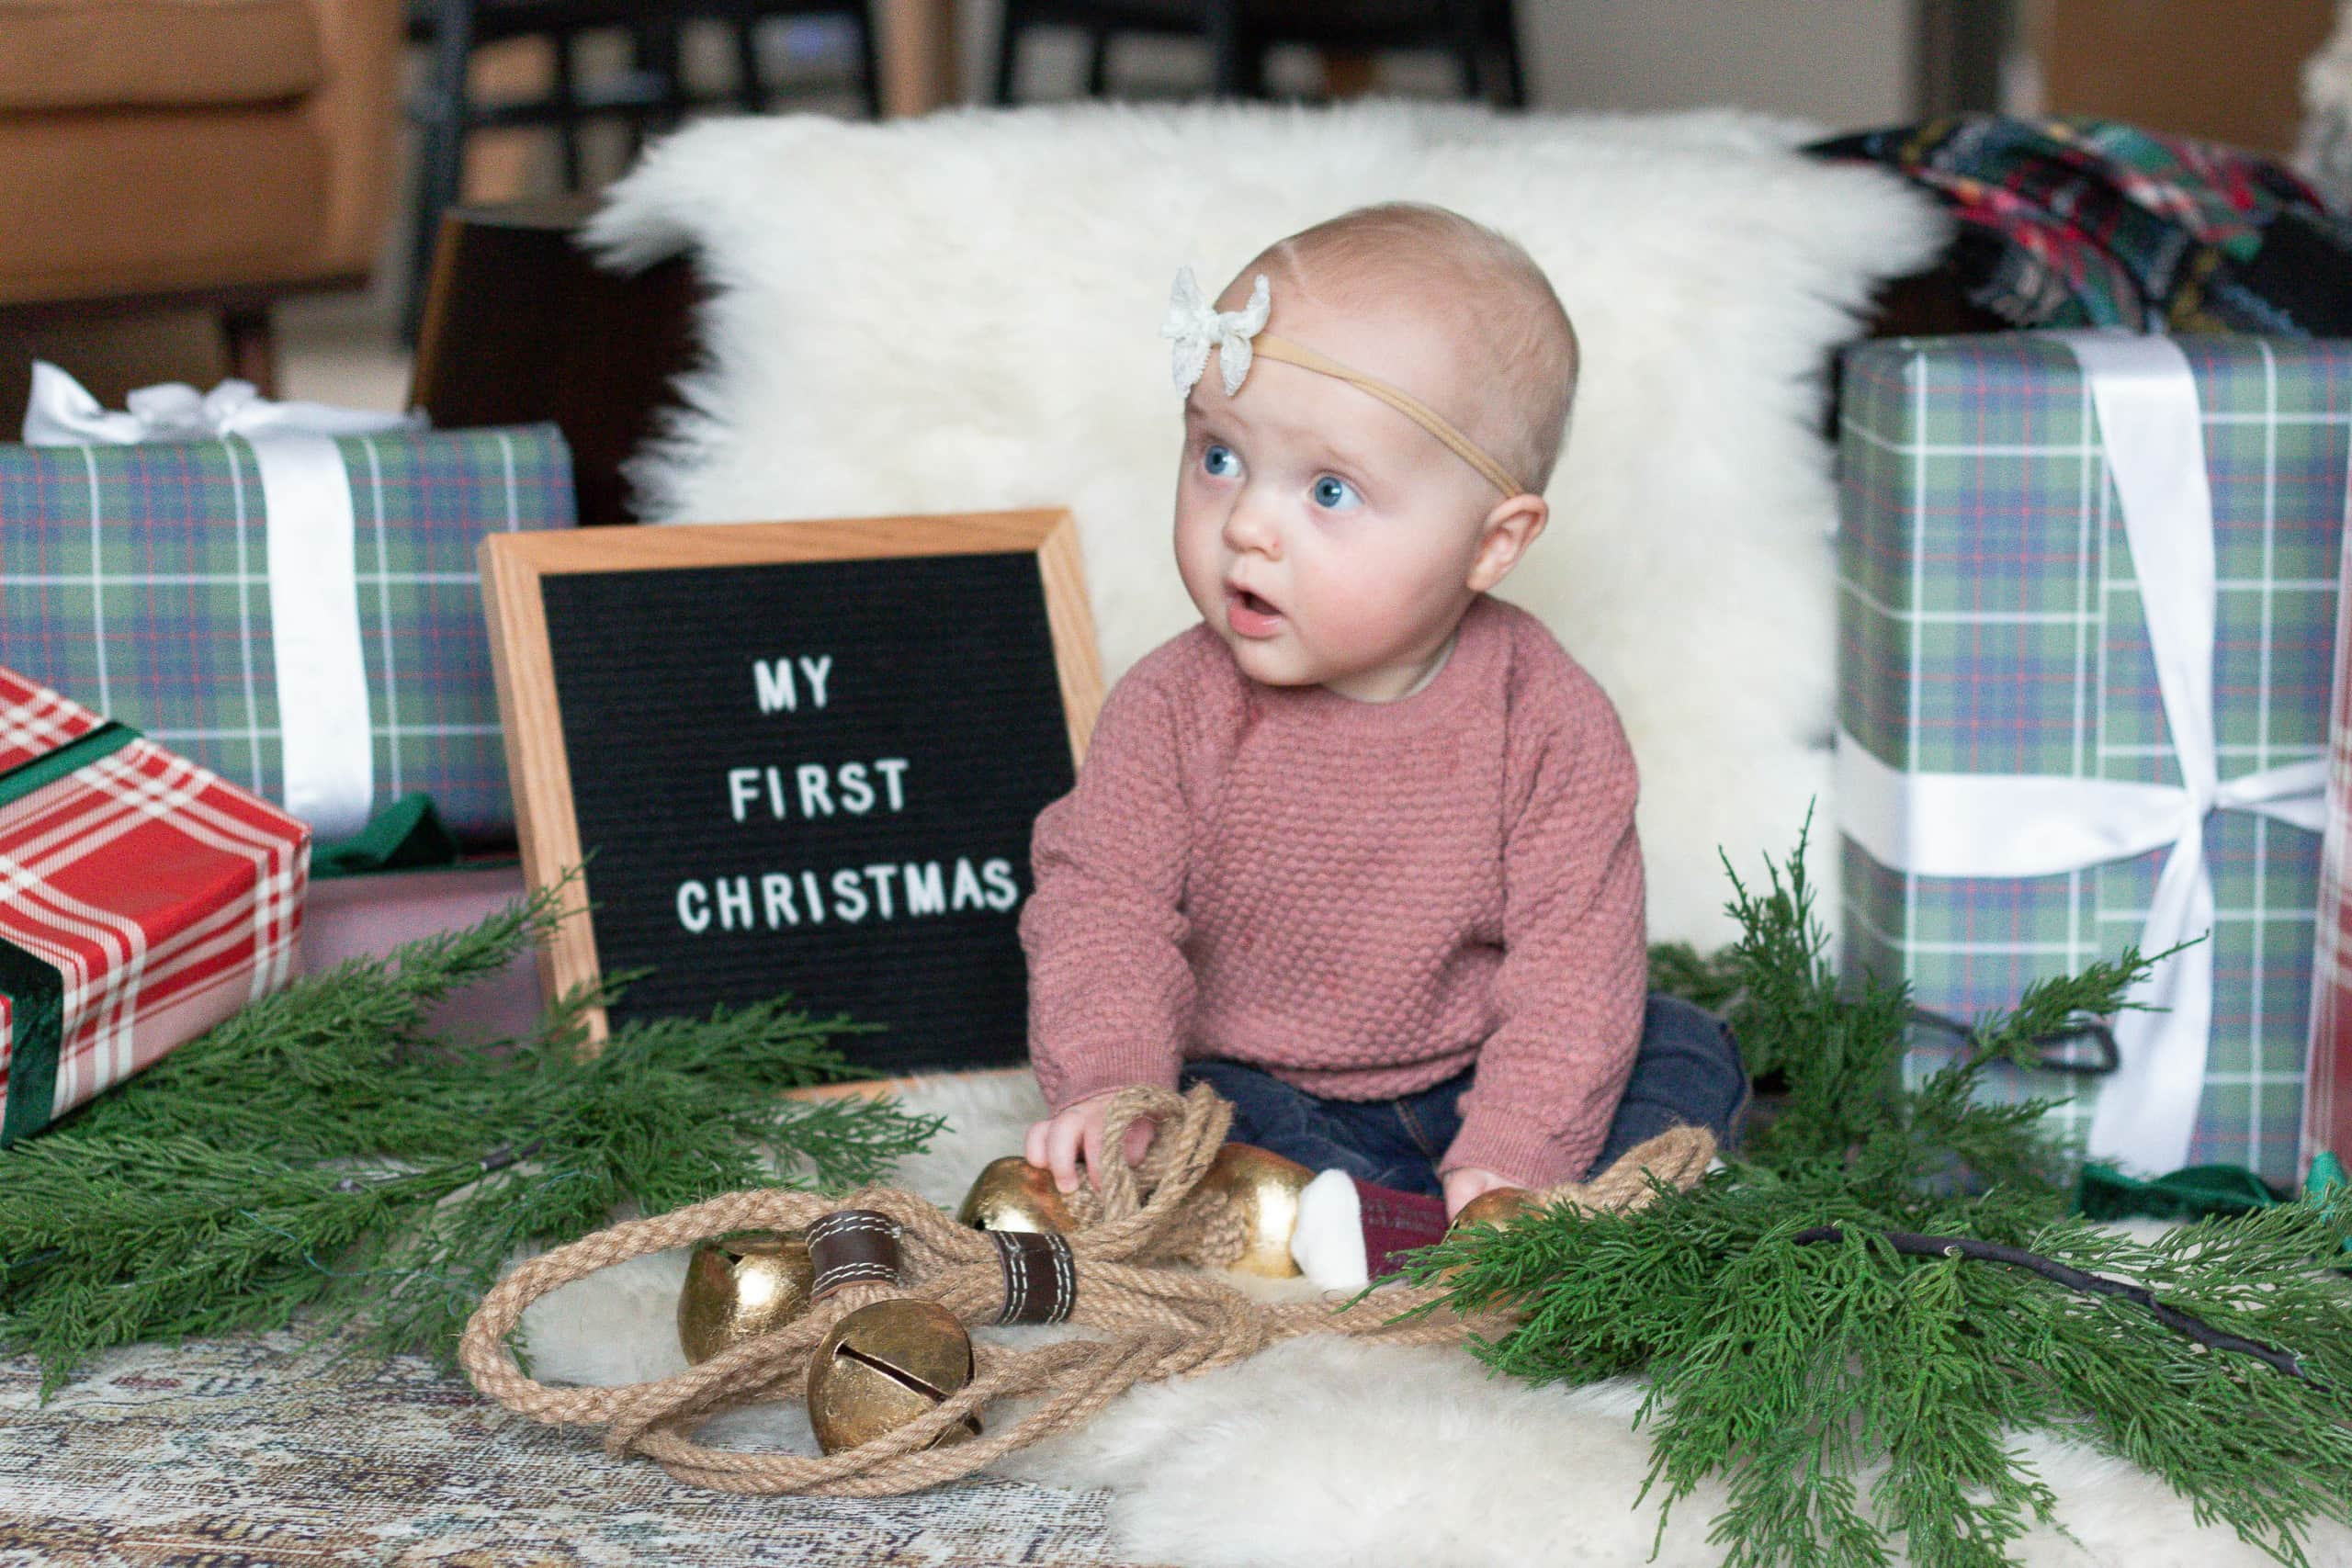 Rory's first Christmas